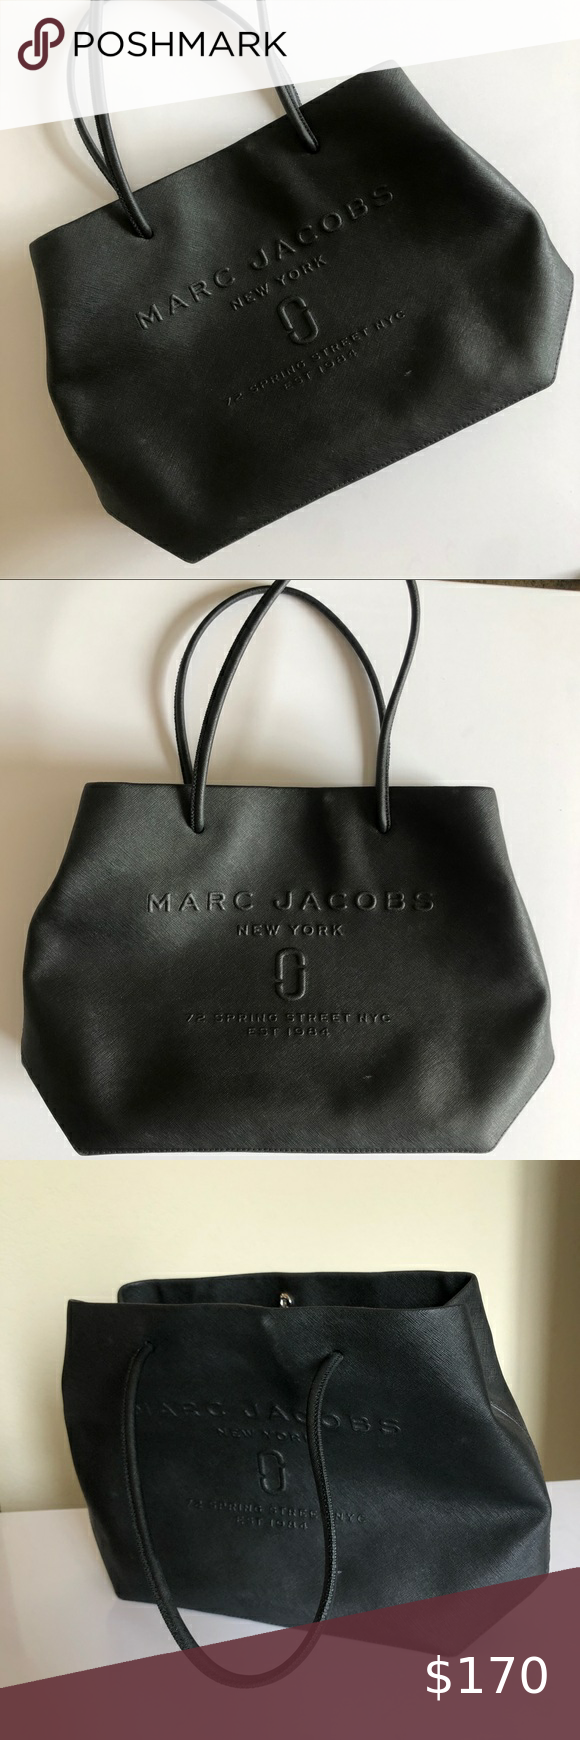 Marc Jacobs Logo Shopper East West Purse Super Clean No Flaws Used Only A Handful Of Times Features 72 Spring Street Ad Marc Jacobs Logo Marc Jacobs Jacobs